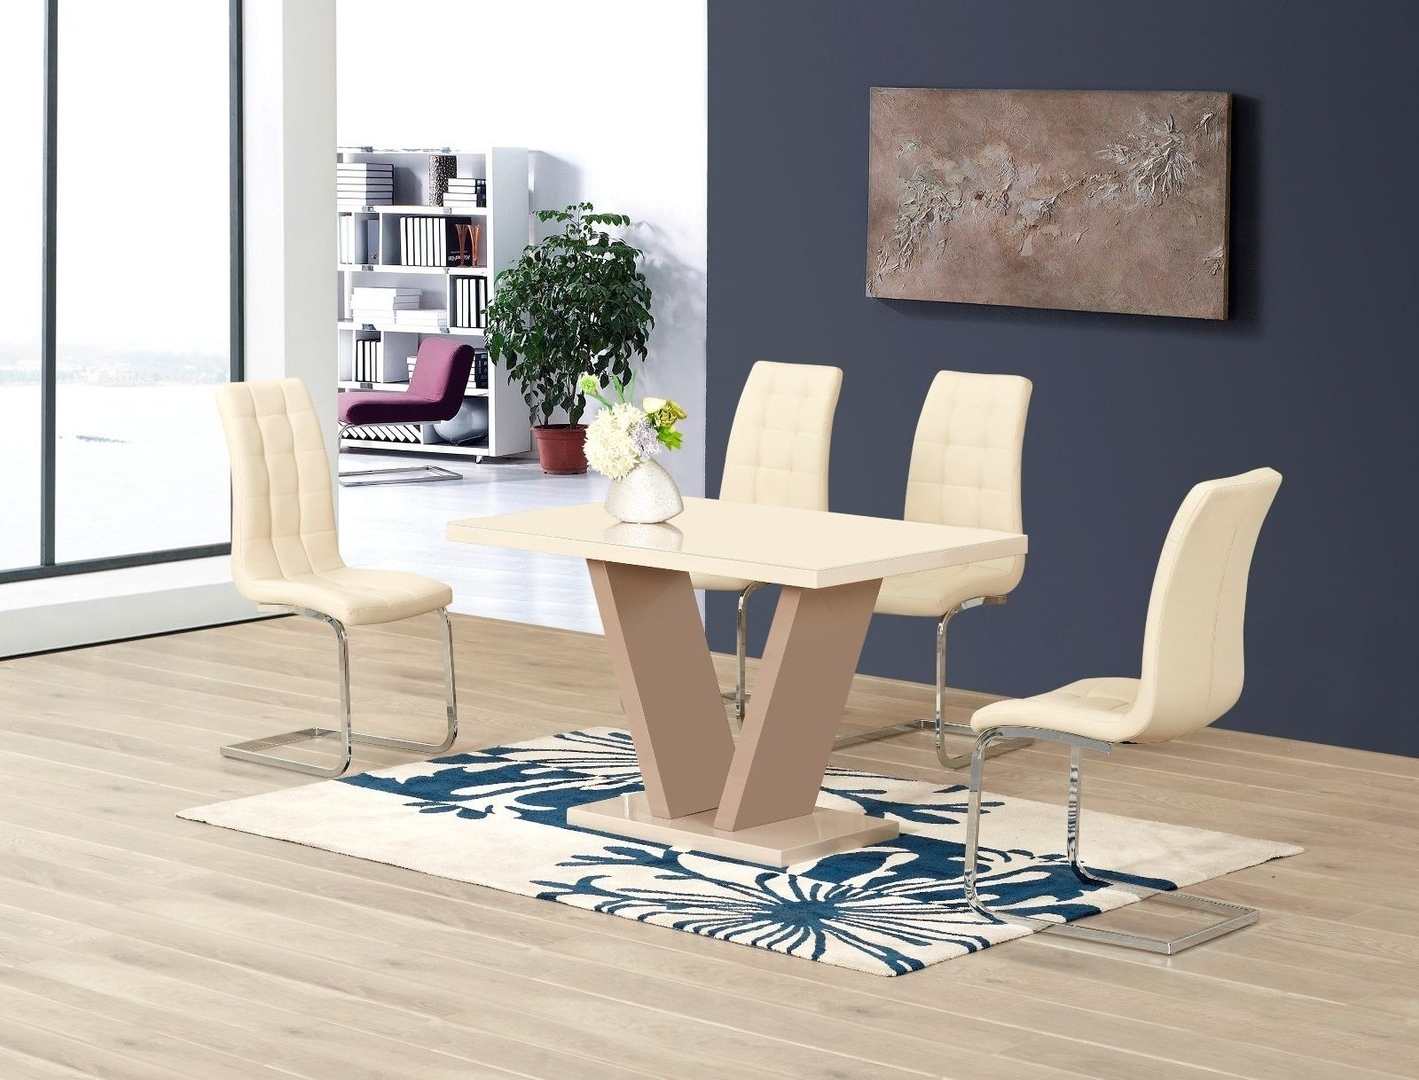 Cream High Gloss Glass Dining Table And 6 Chairs – Homegenies Within Favorite Glass Dining Tables With 6 Chairs (View 3 of 25)